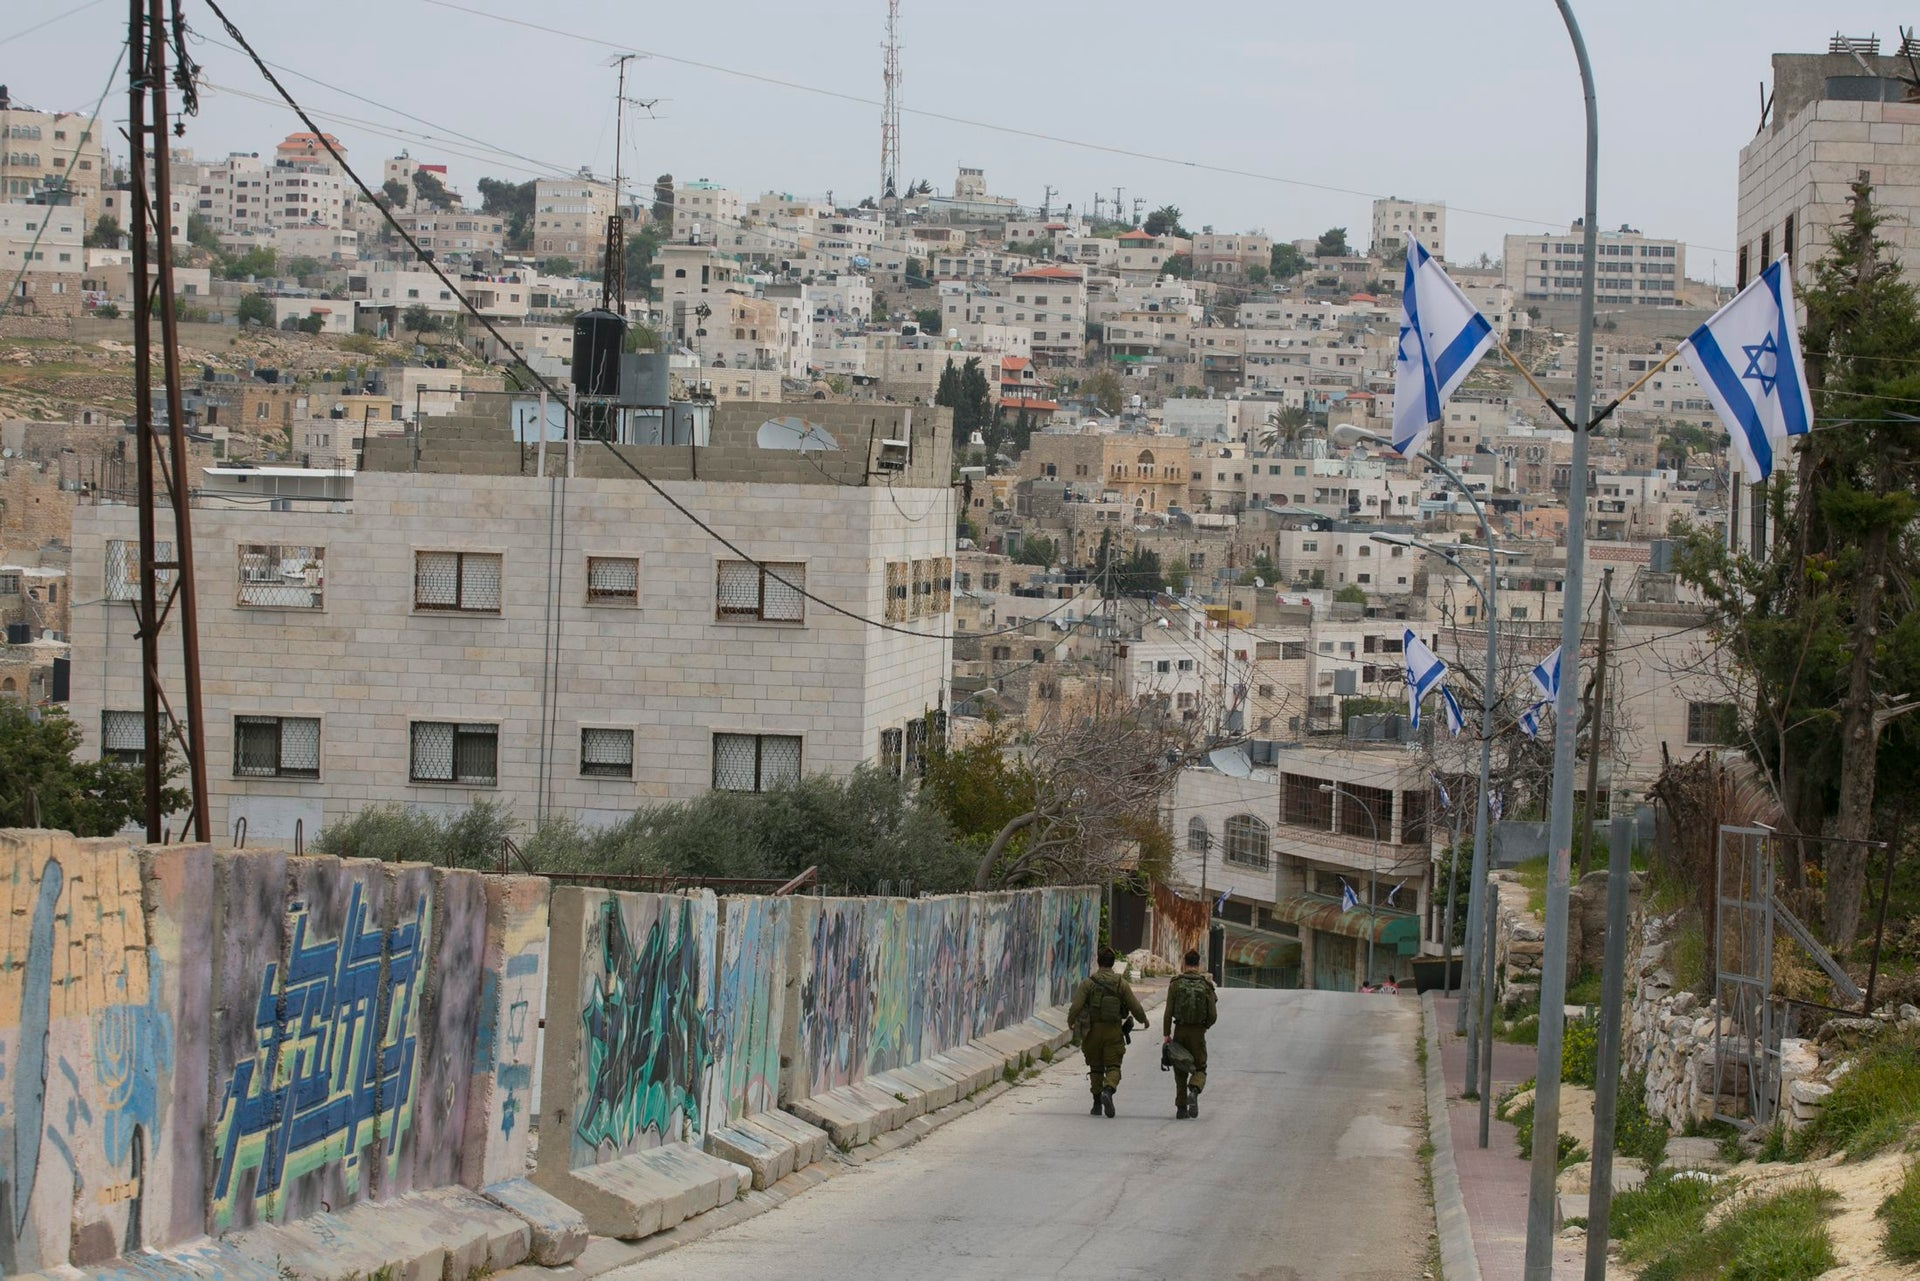 Israeli soldiers in the Israeli-controlled part of Hebron (H2).